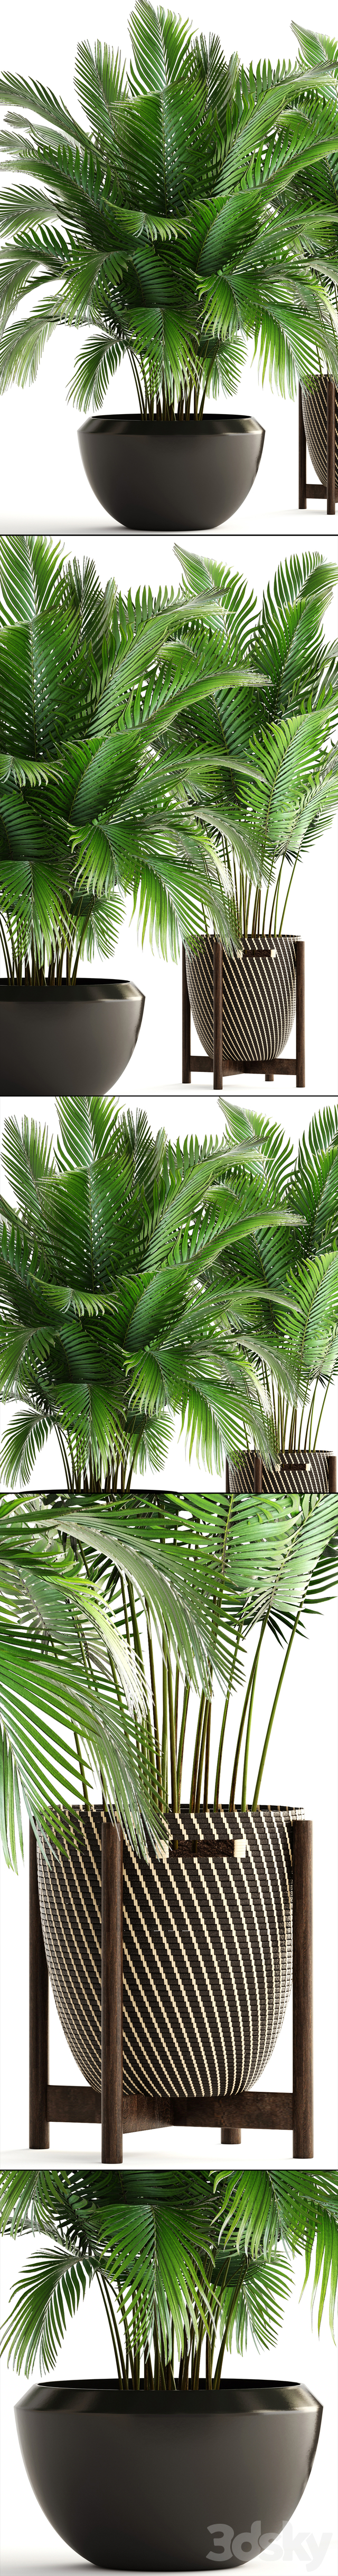 Collection of plants 164. Areca Palm